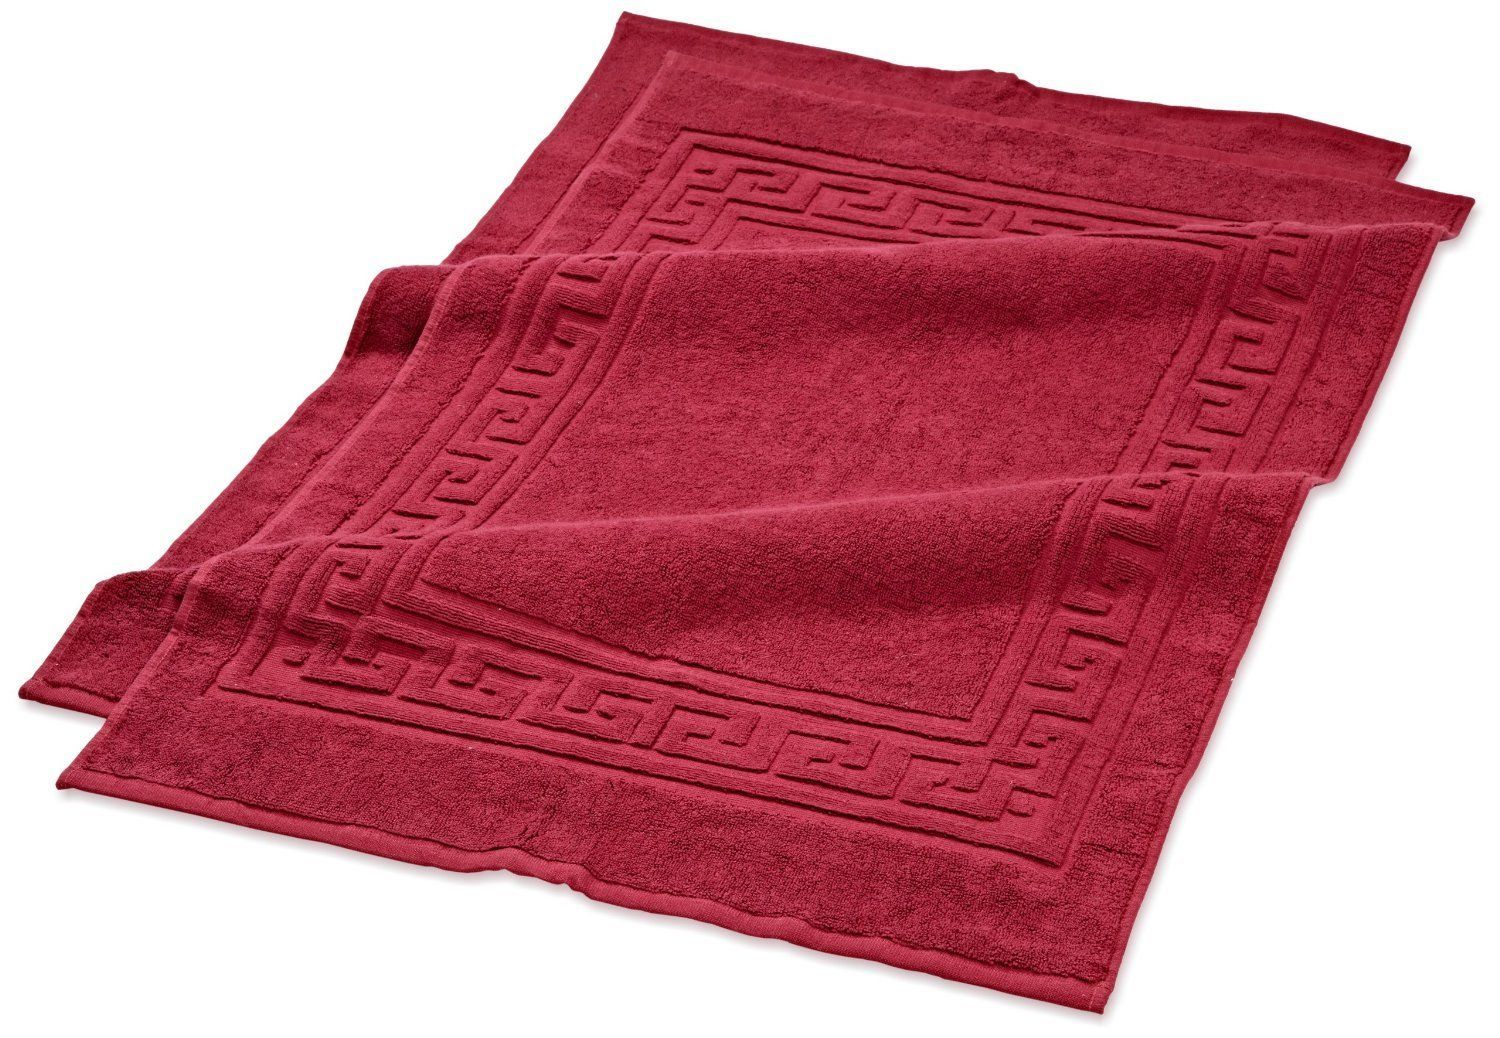 Egyptian Cotton Superior 2 Piece Bath Mat Bath Rug Set Burgundy Sheets Pillowcases